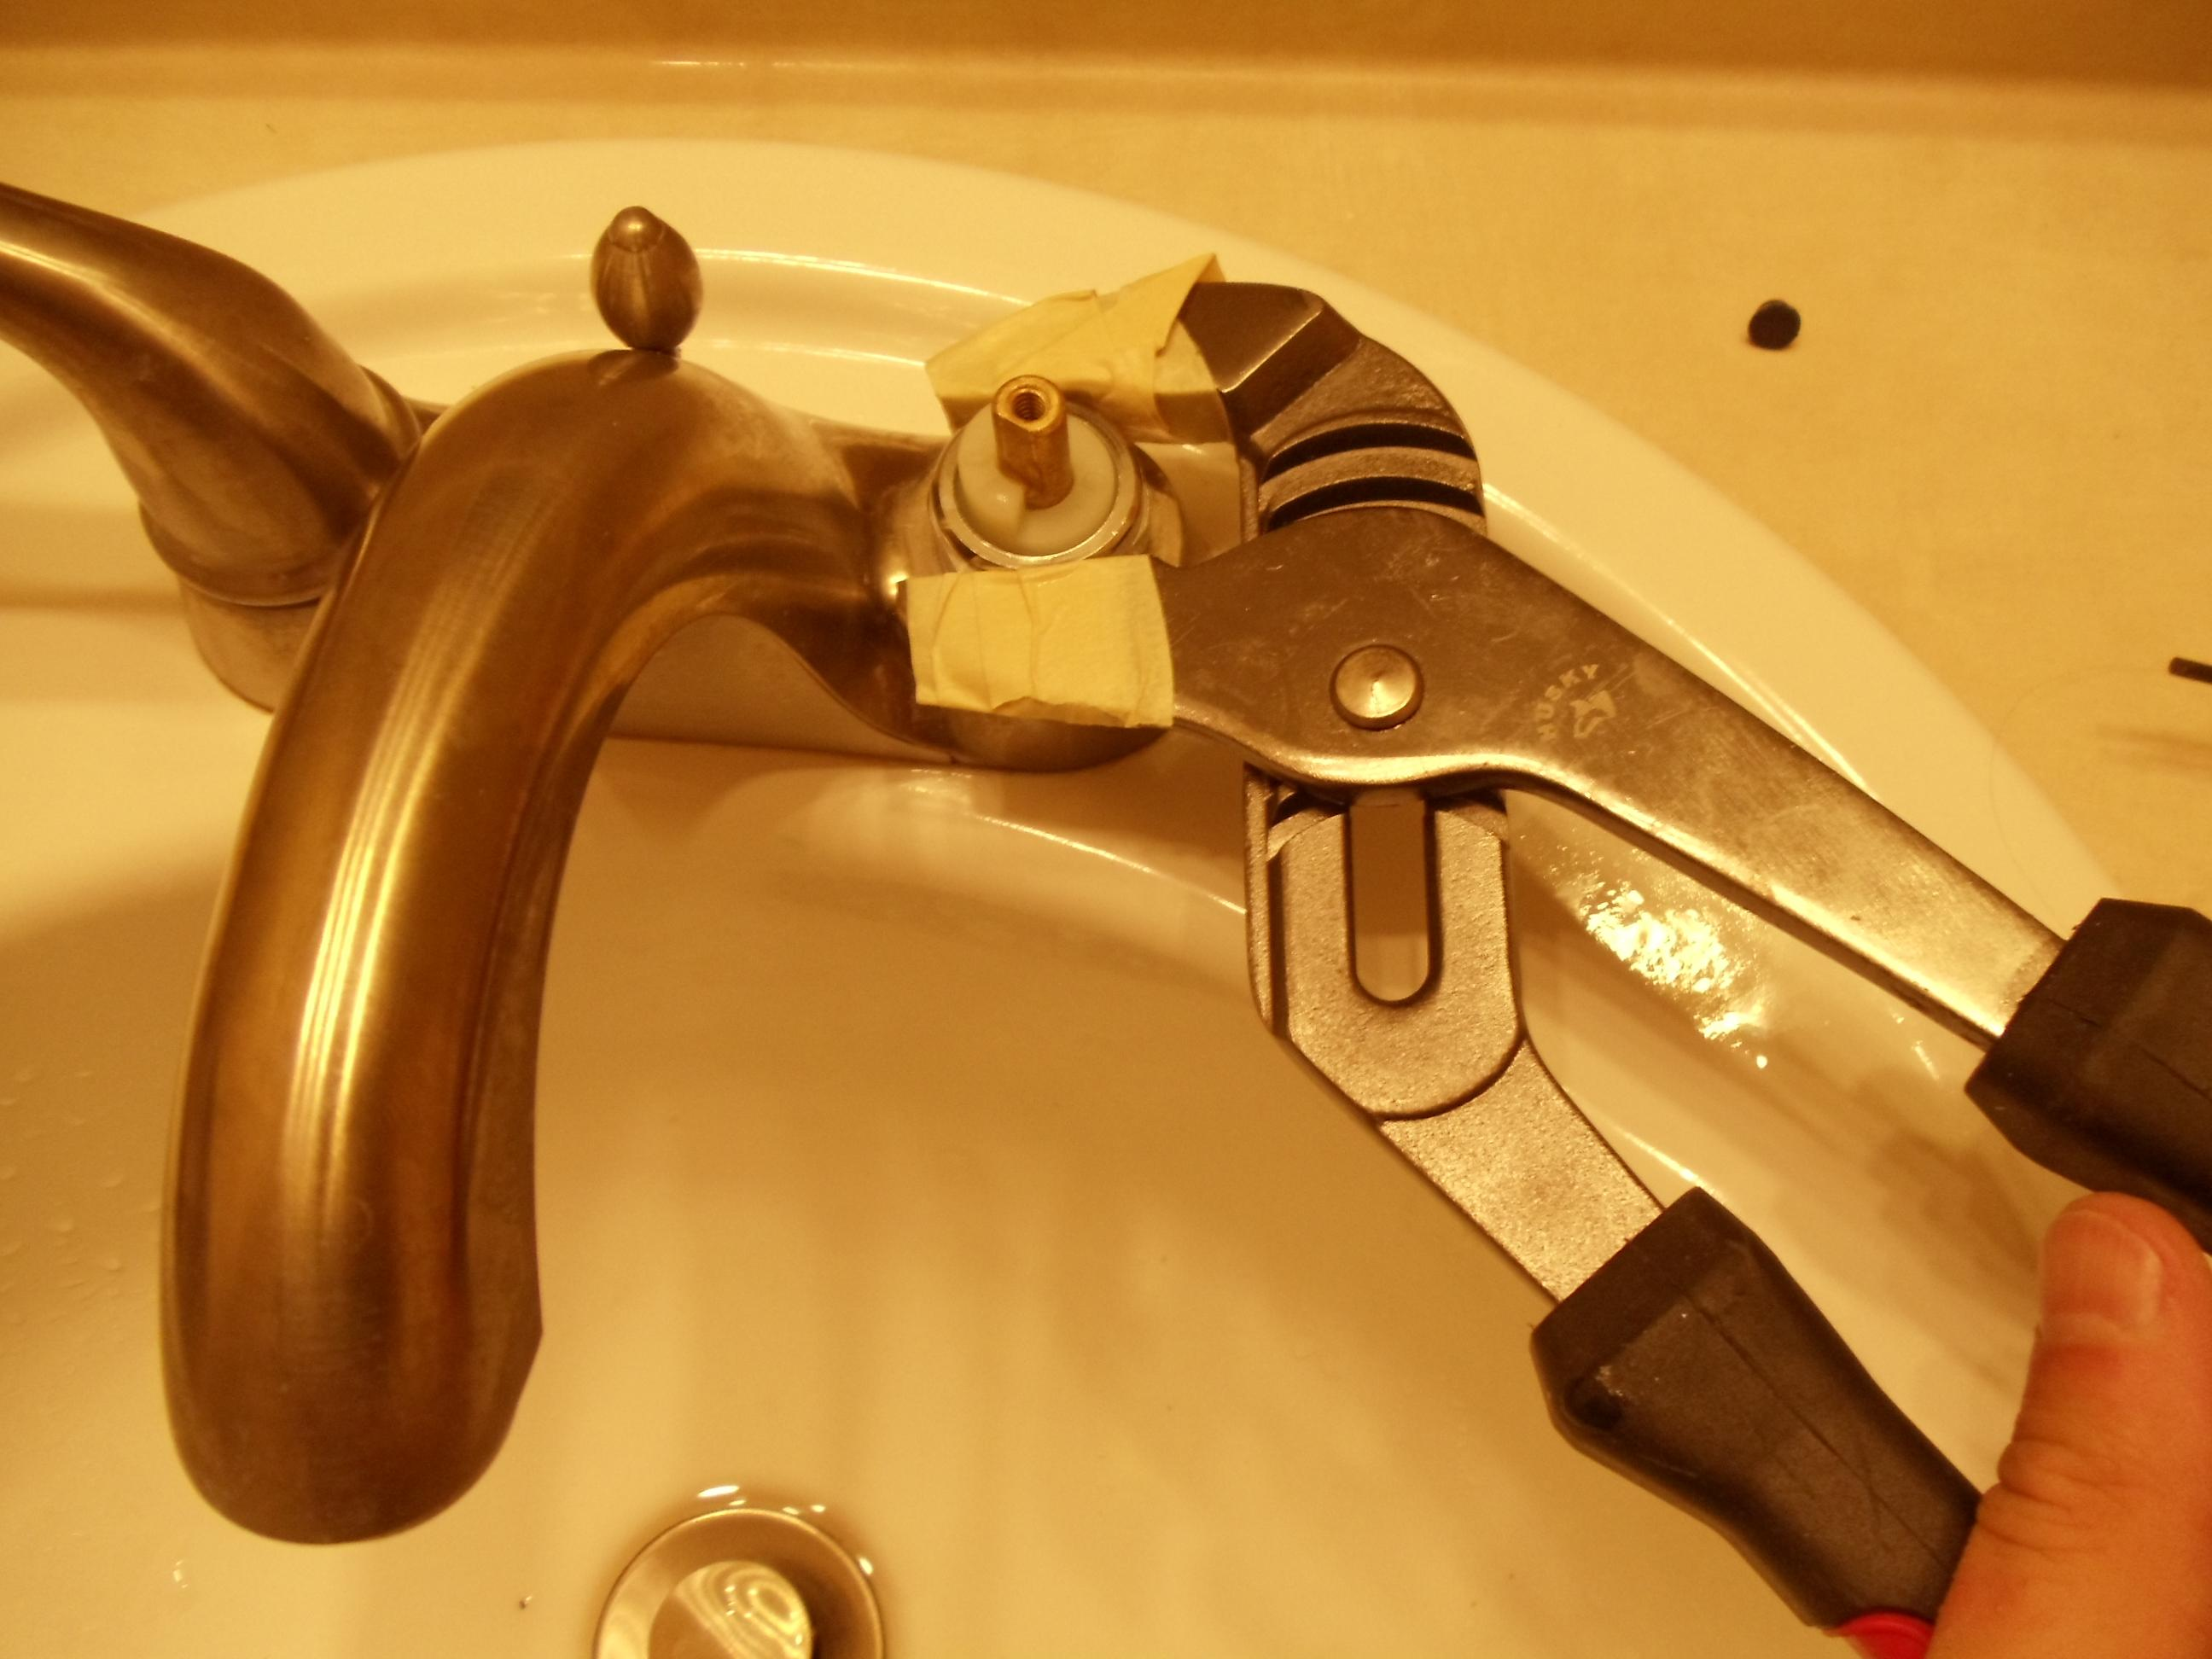 Bathroom Sink Faucet Repair. Fix Leaking Bathroom Sink Faucet Repair ...